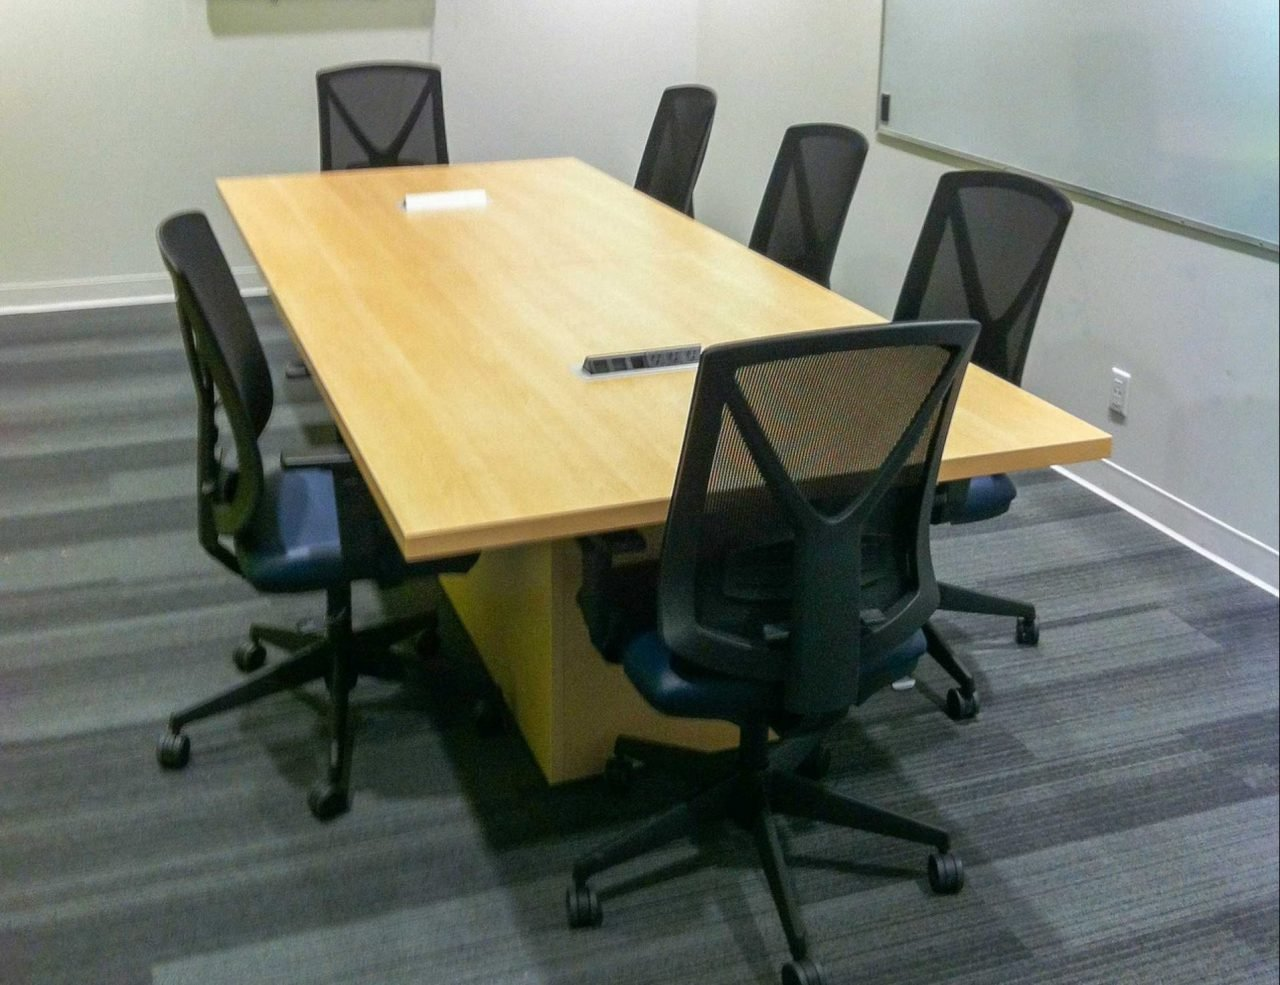 Meeting Table with cable box